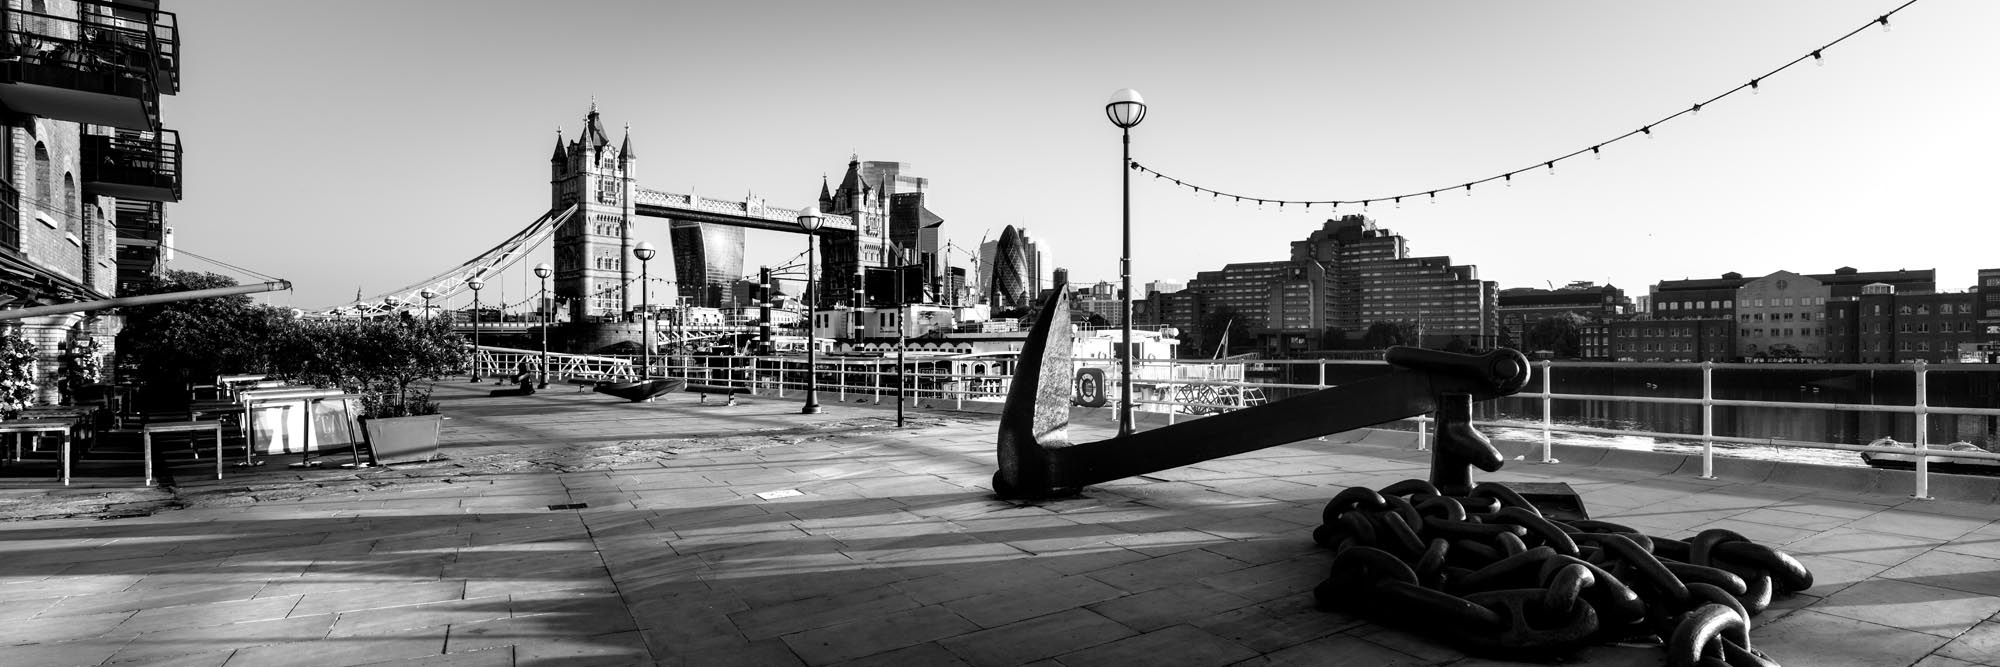 a anchor on the banks of the thames river